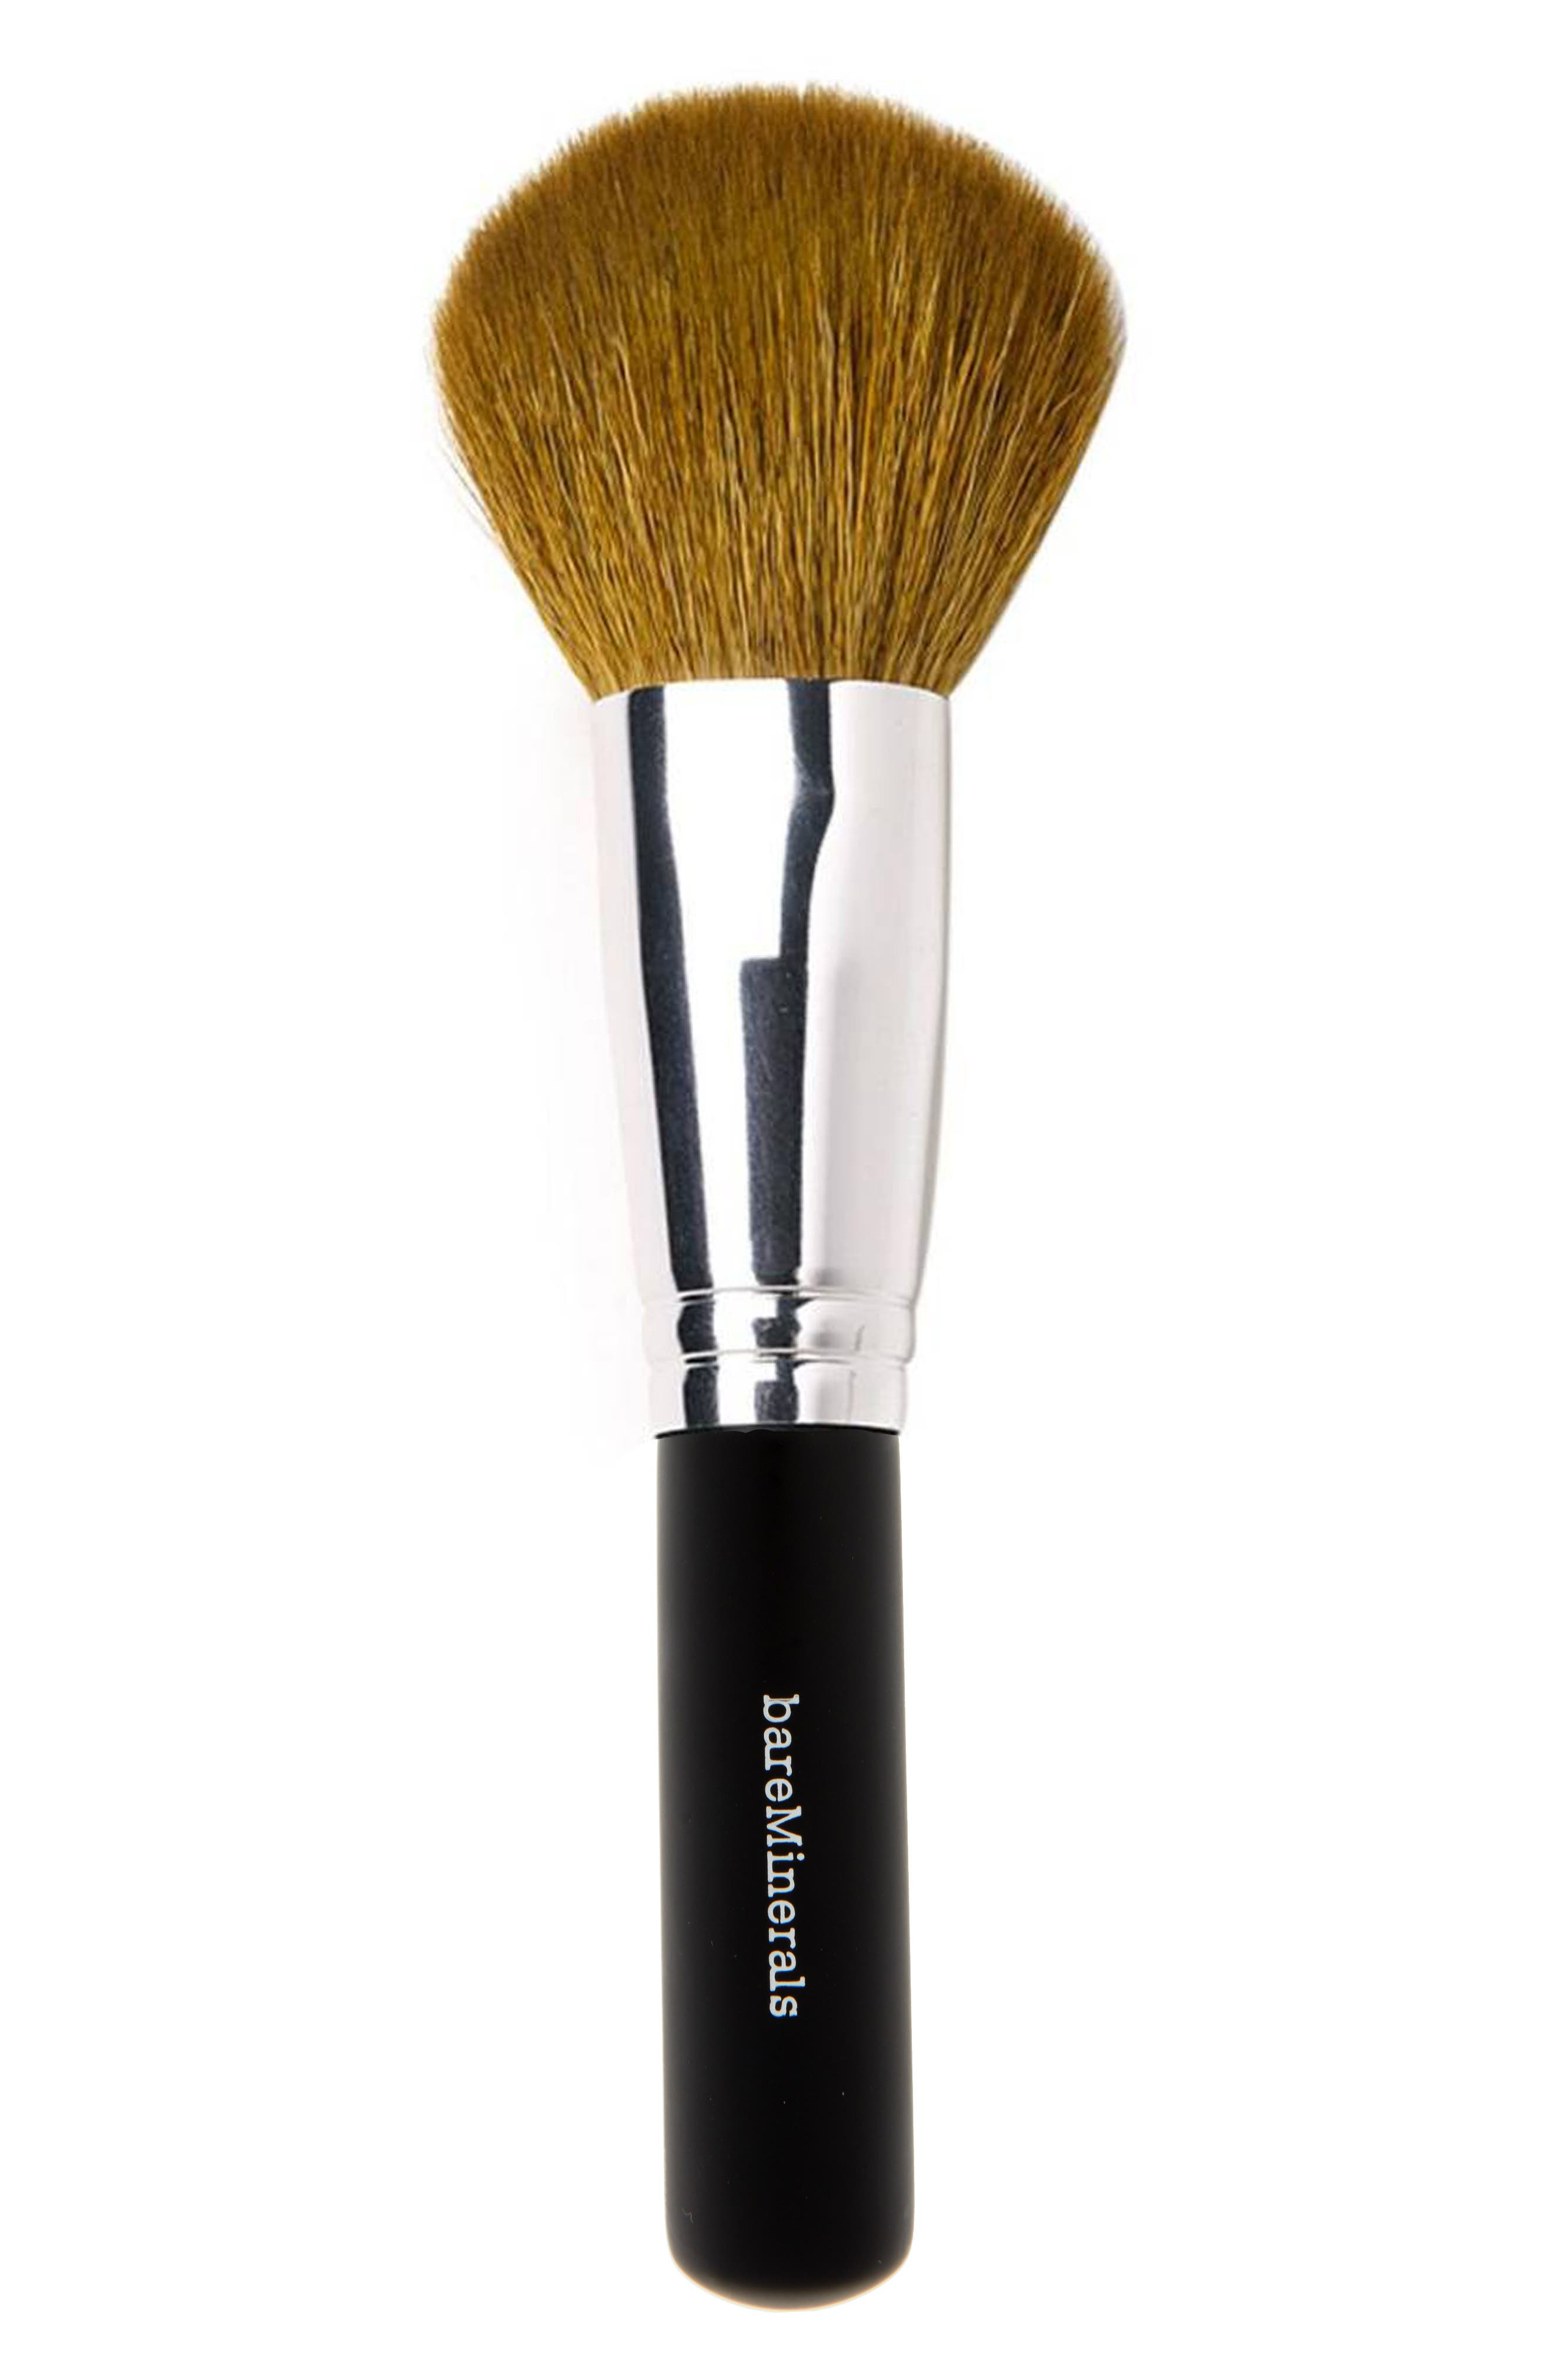 Full Flawless Face Brush,                             Alternate thumbnail 2, color,                             NO COLOR